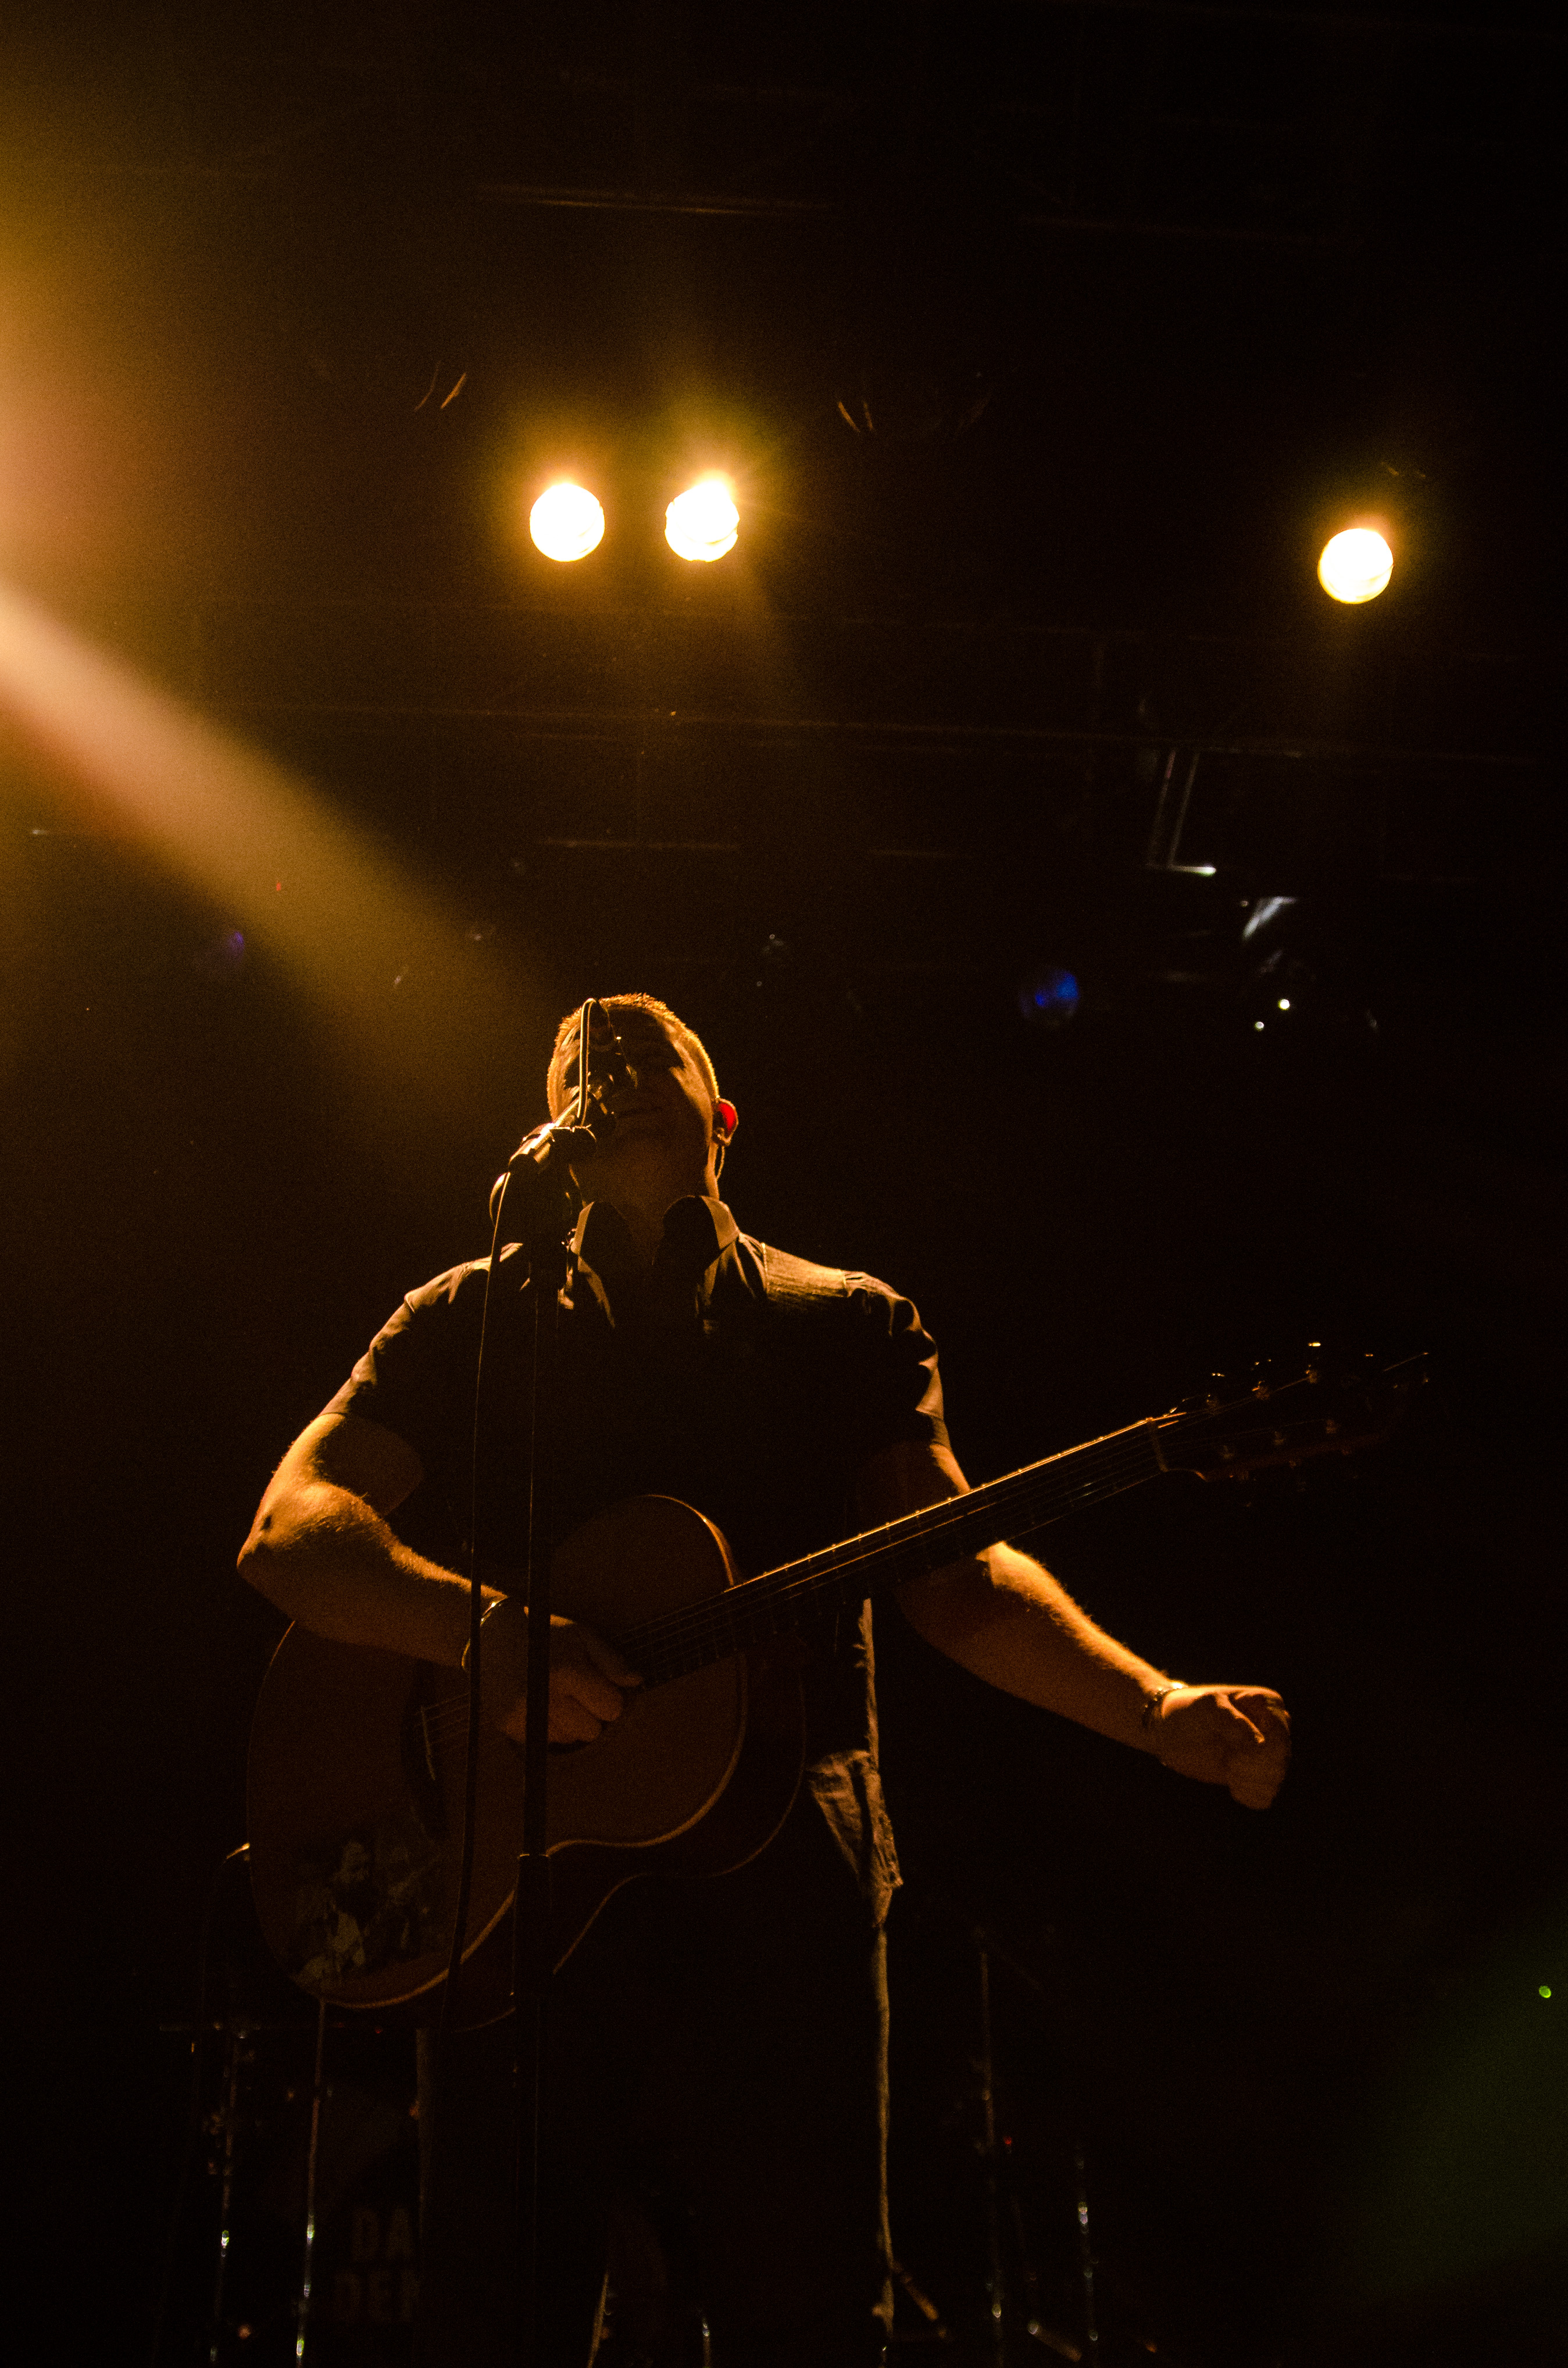 damien-dempsey-at-vicar-street-by-sean-smyth-19-12-15-1-of-34